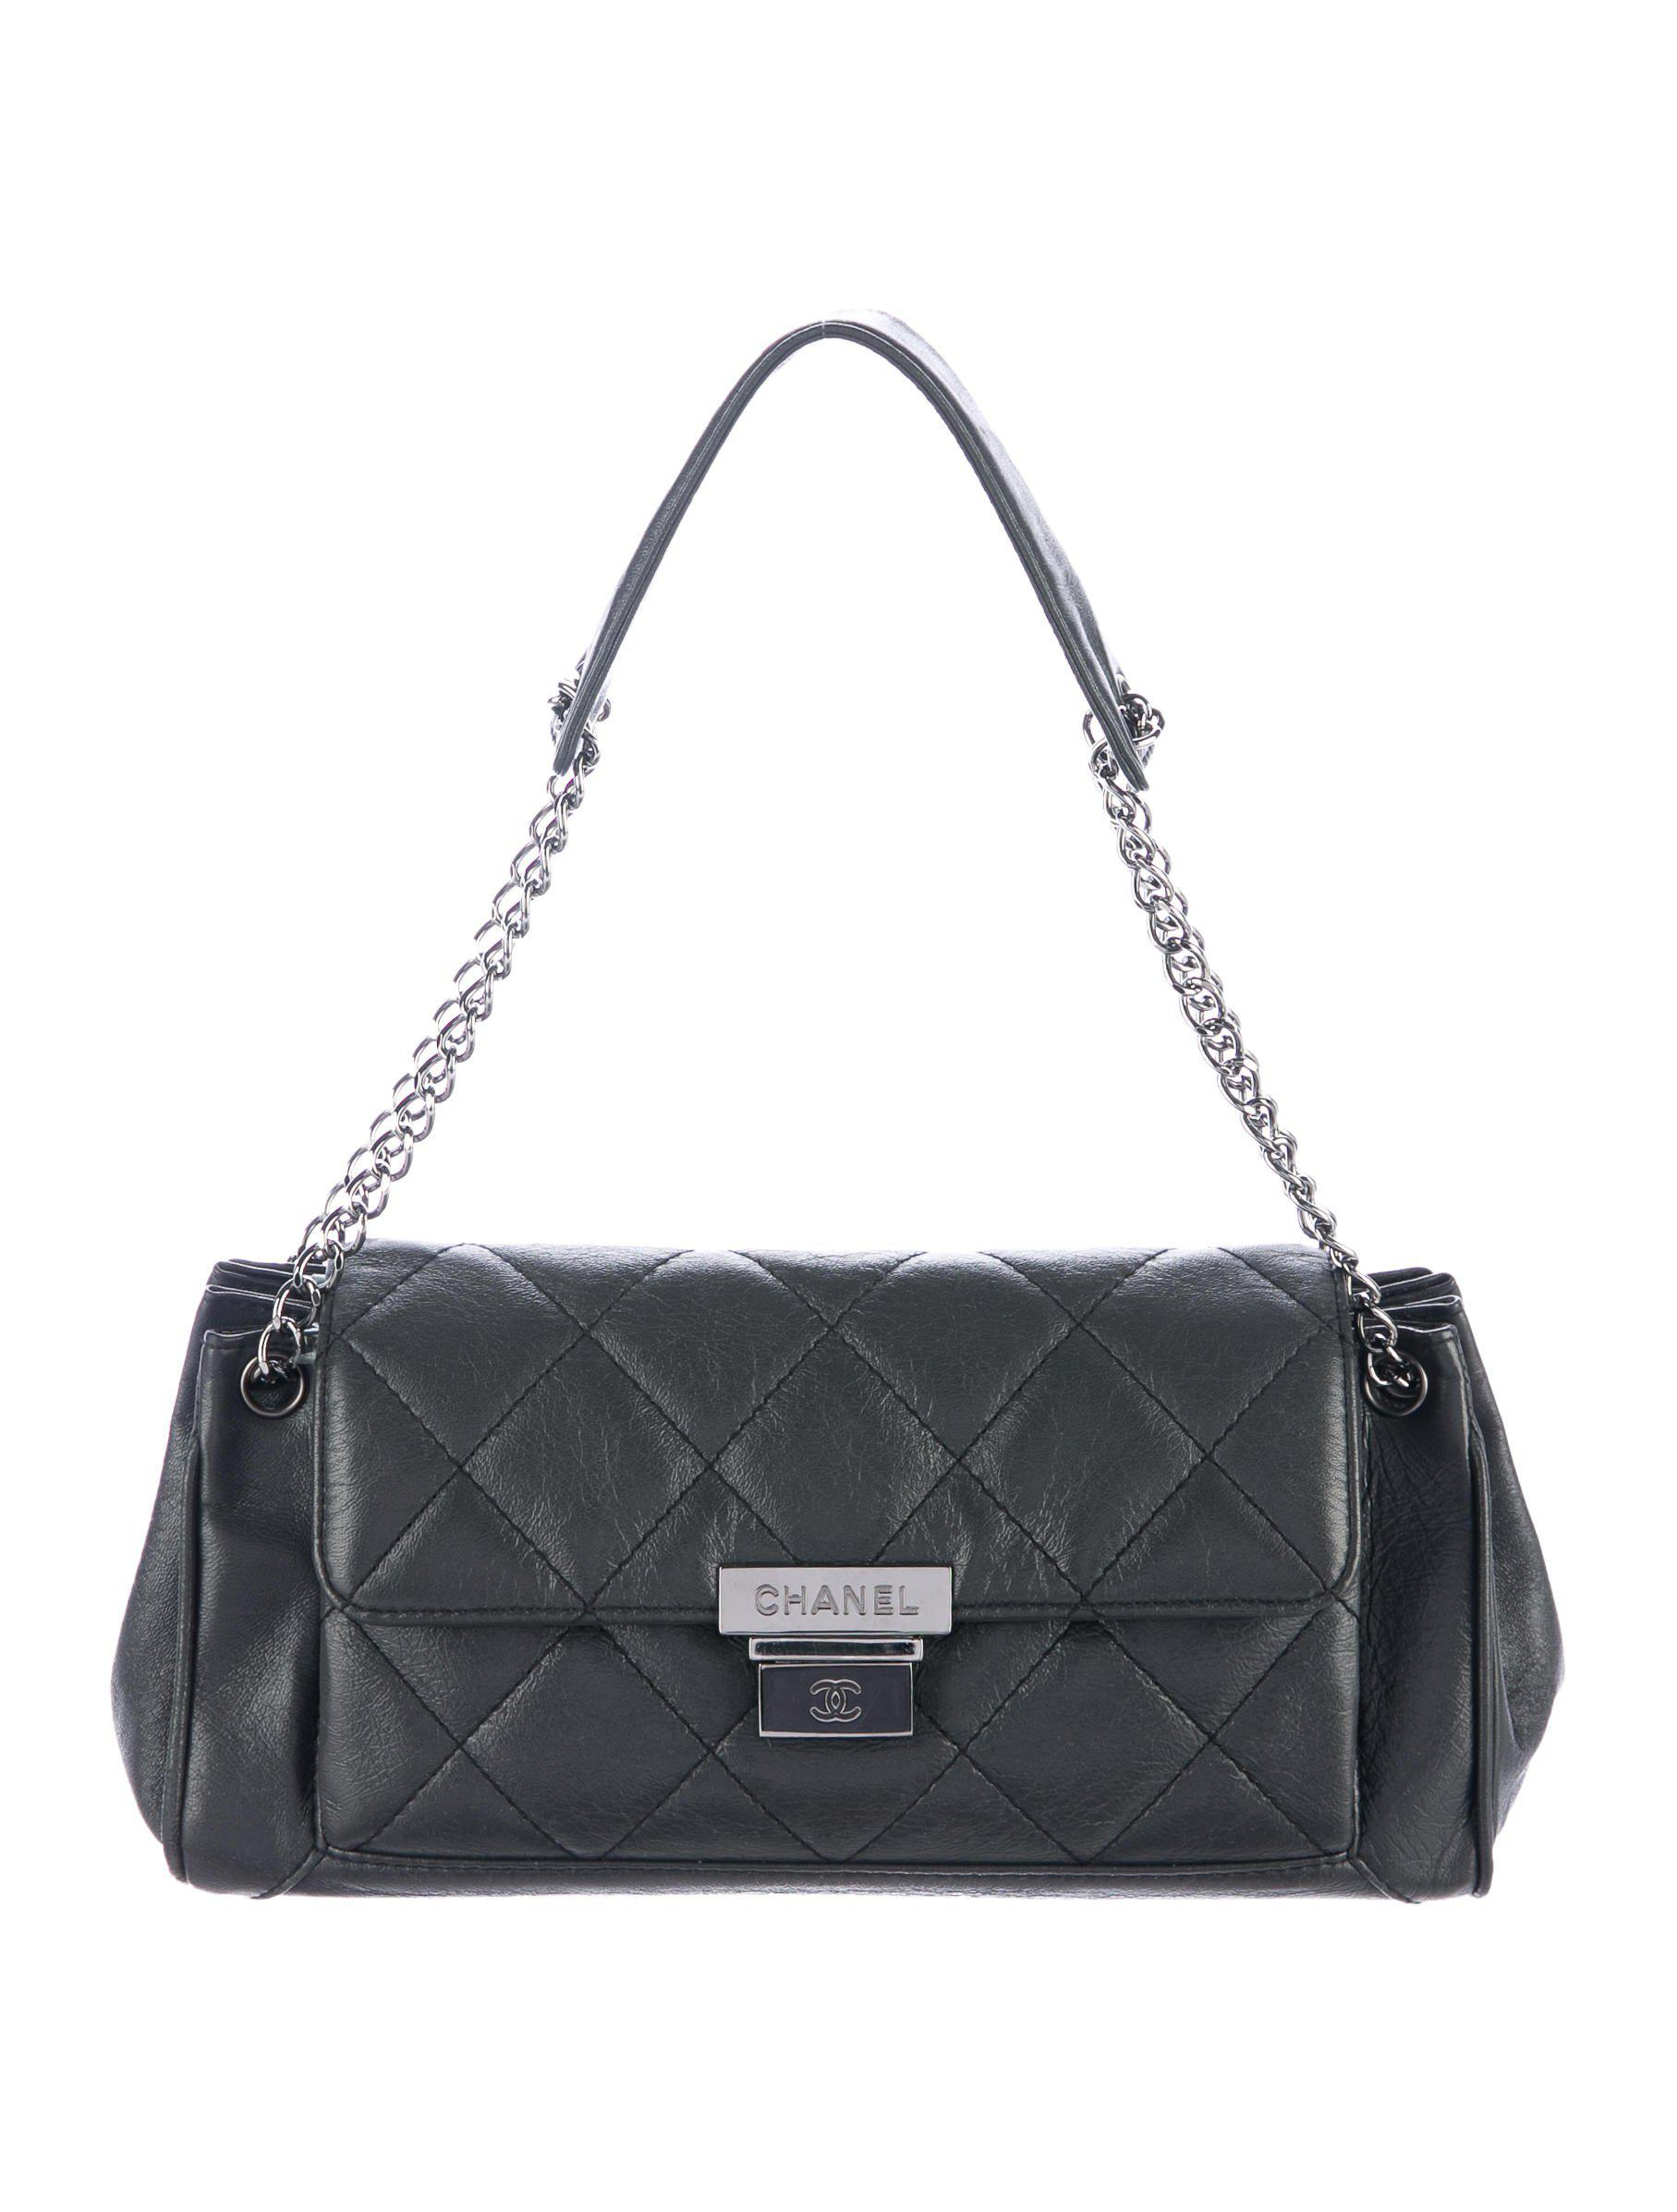 3f2e51c7f3b5 Chanel - Metallic E/w Lambskin Accordion Flap Bag - Lyst. View Fullscreen